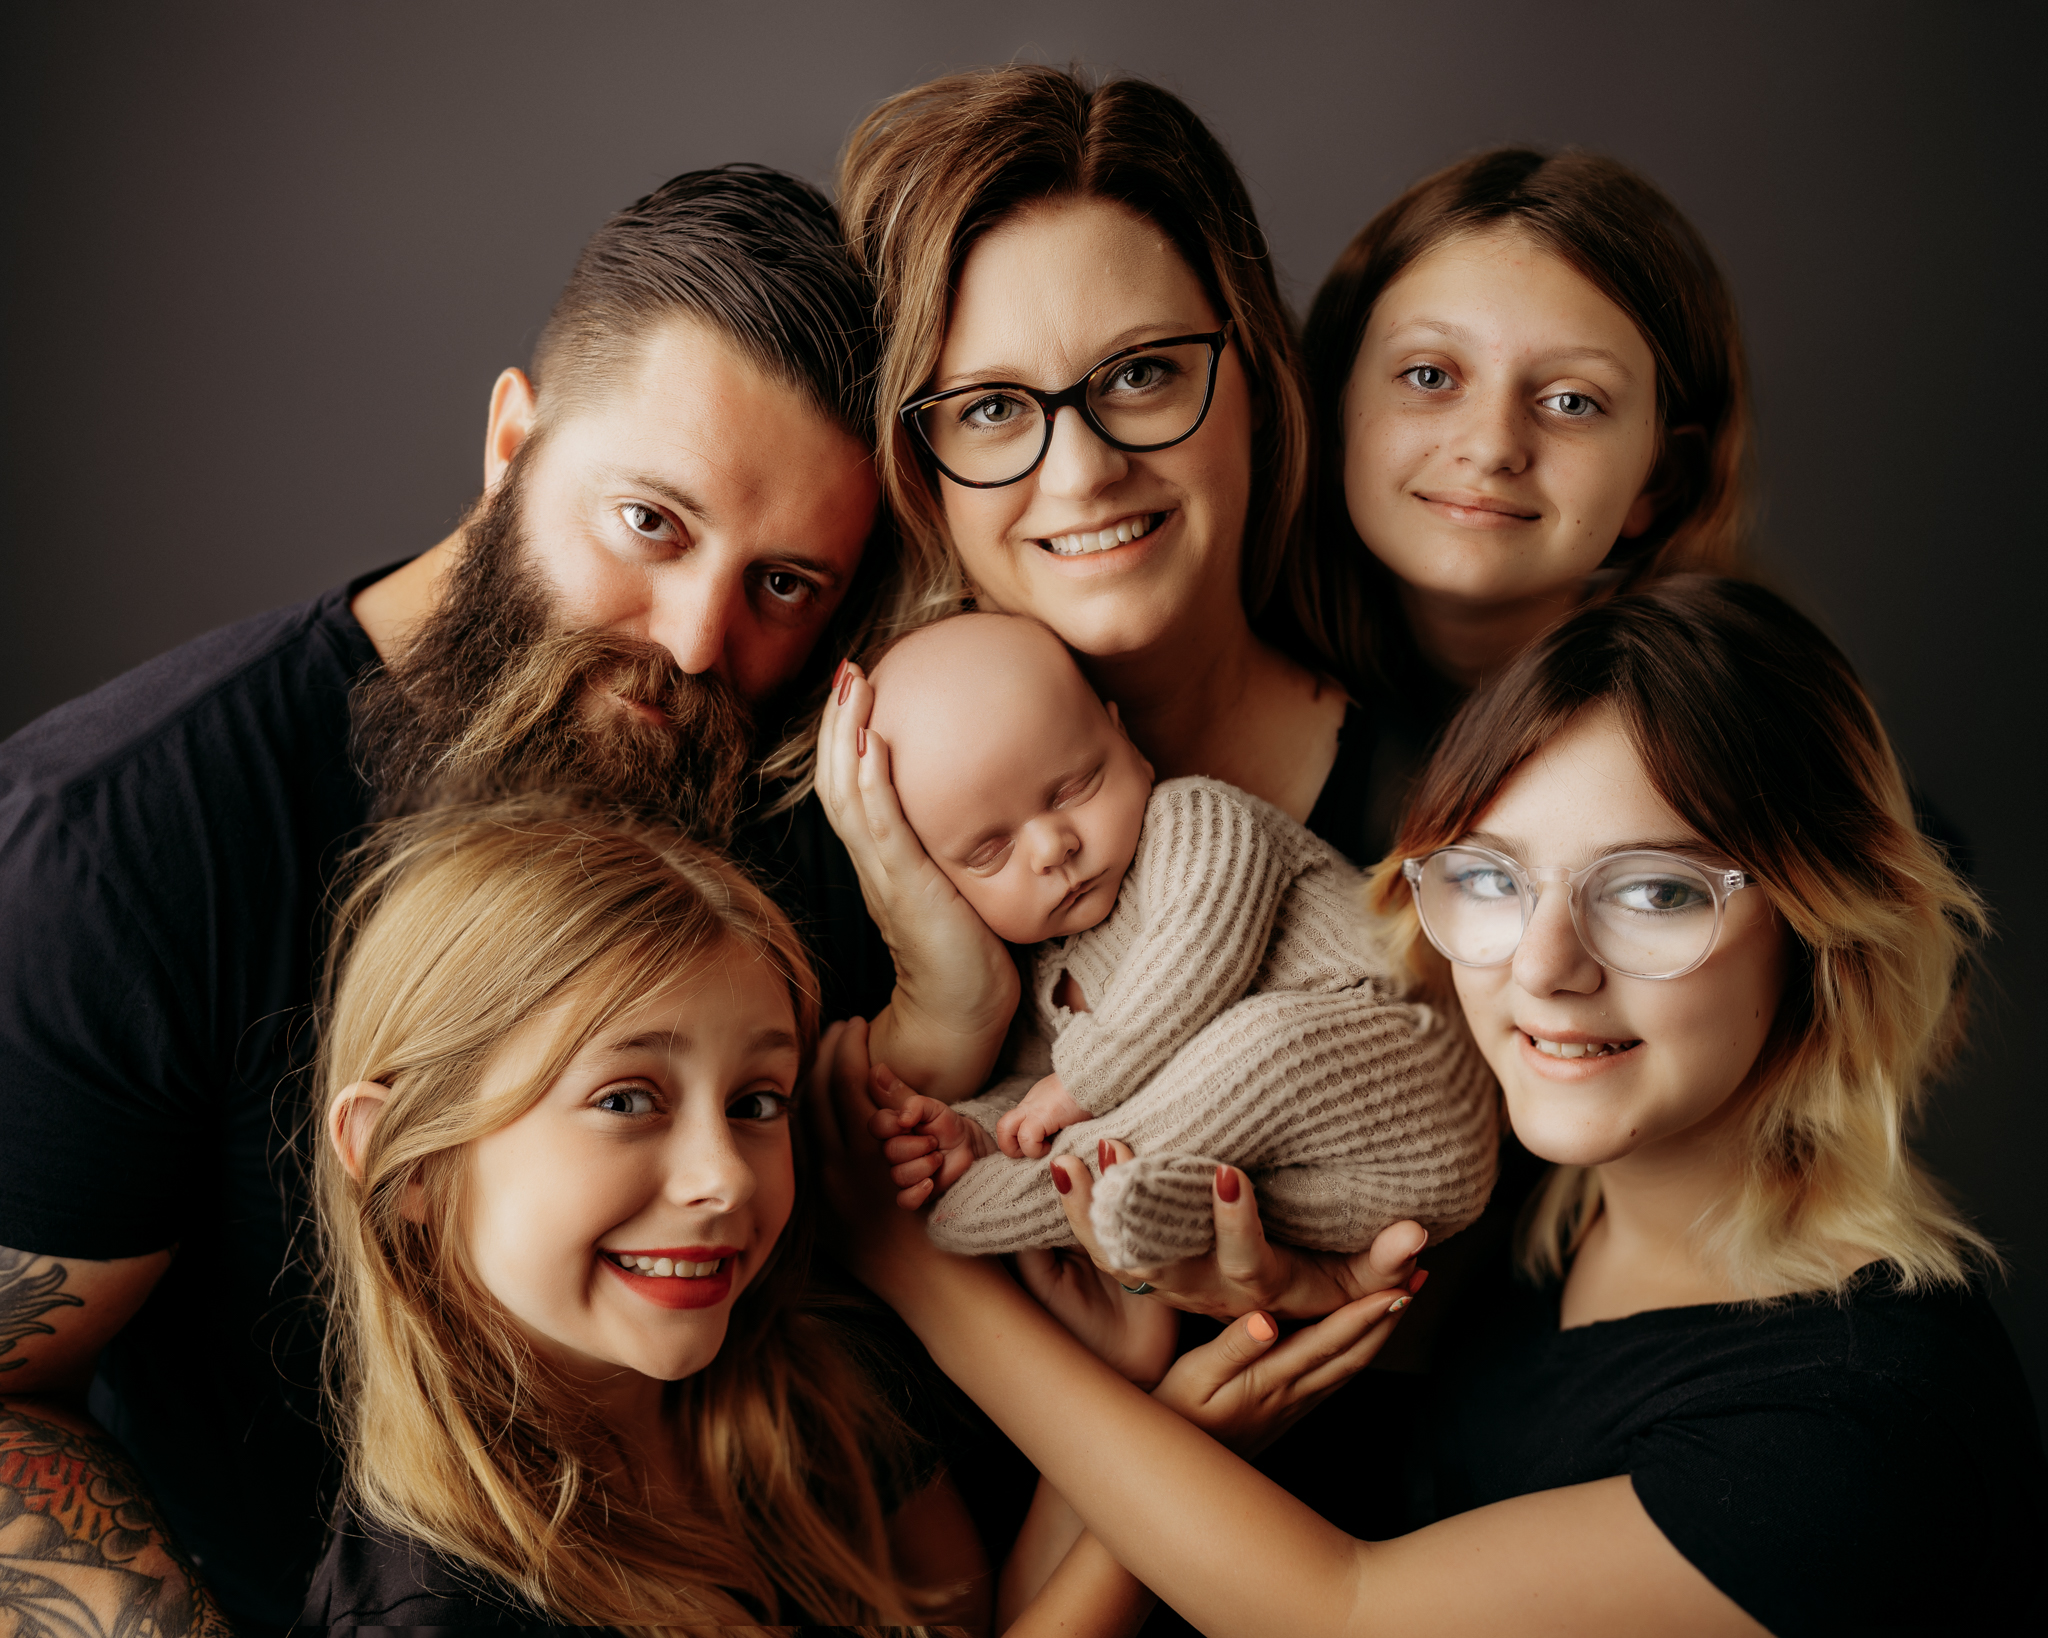 family image on dark gray backdrop surrounding the newborn in the family